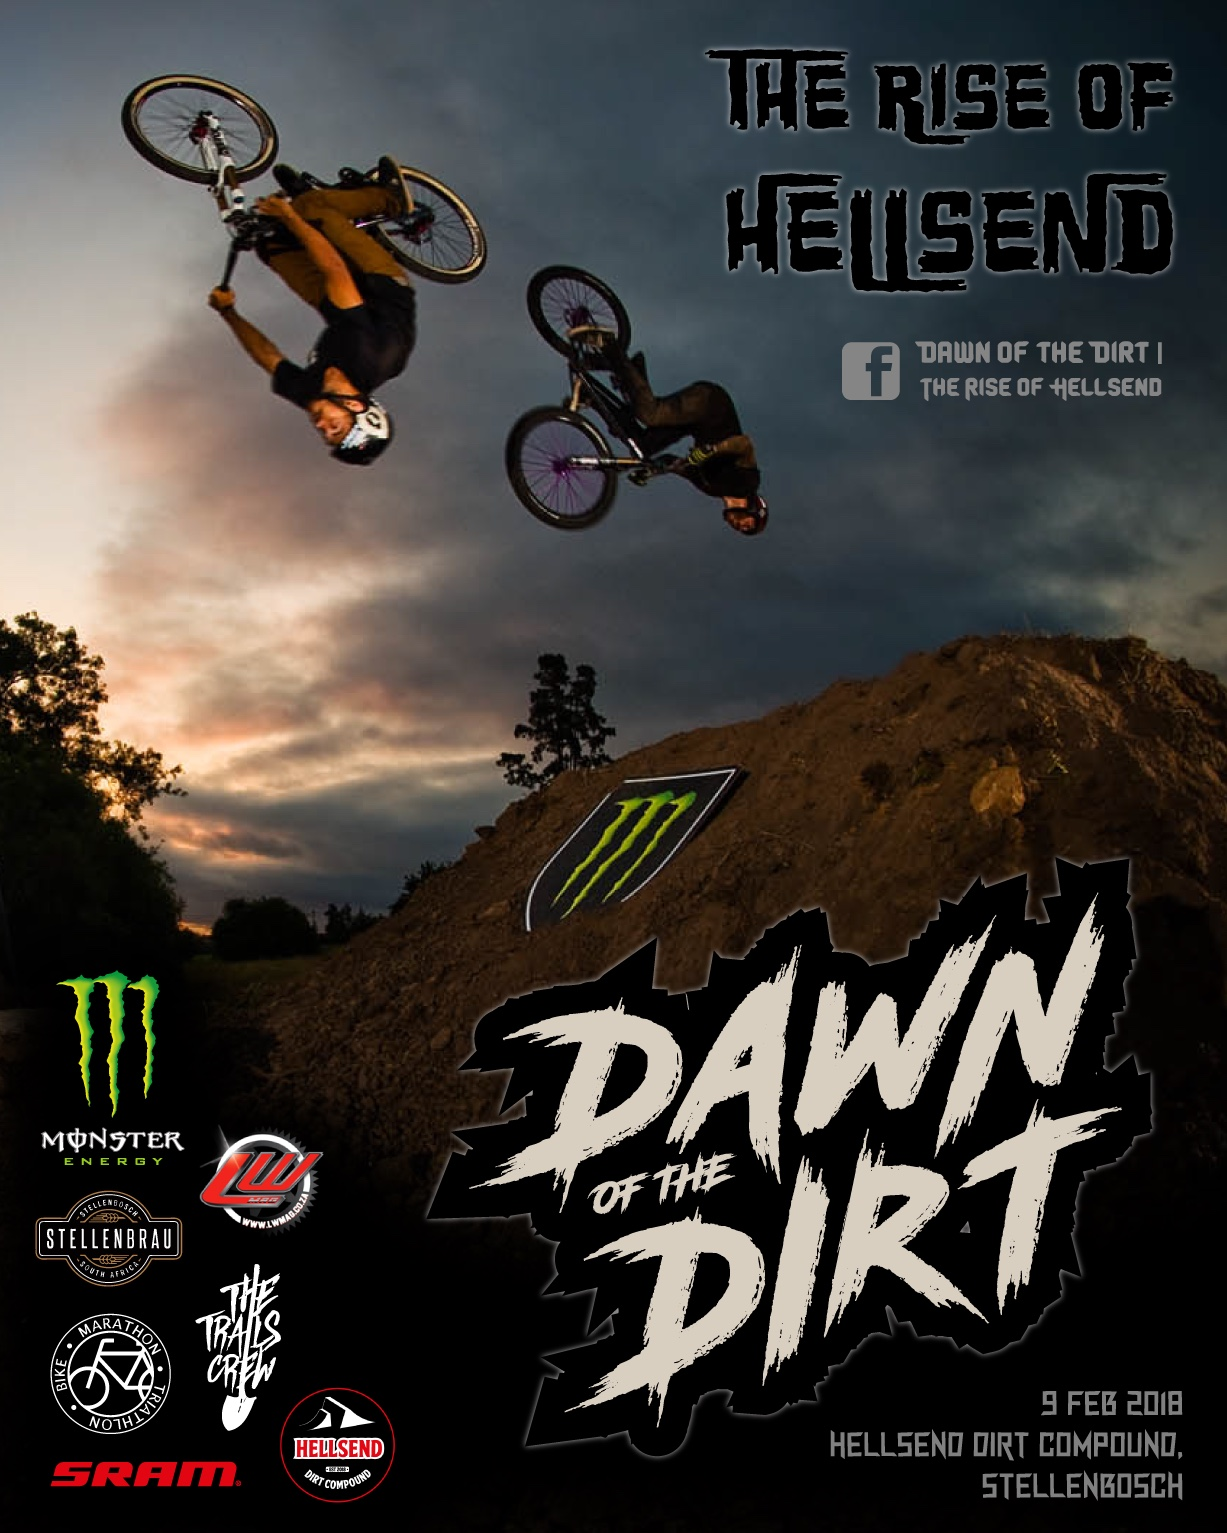 Details for the Dawn of the Dirt MTB and BMX Dirt Jump Jam - The Rise of Hellsend